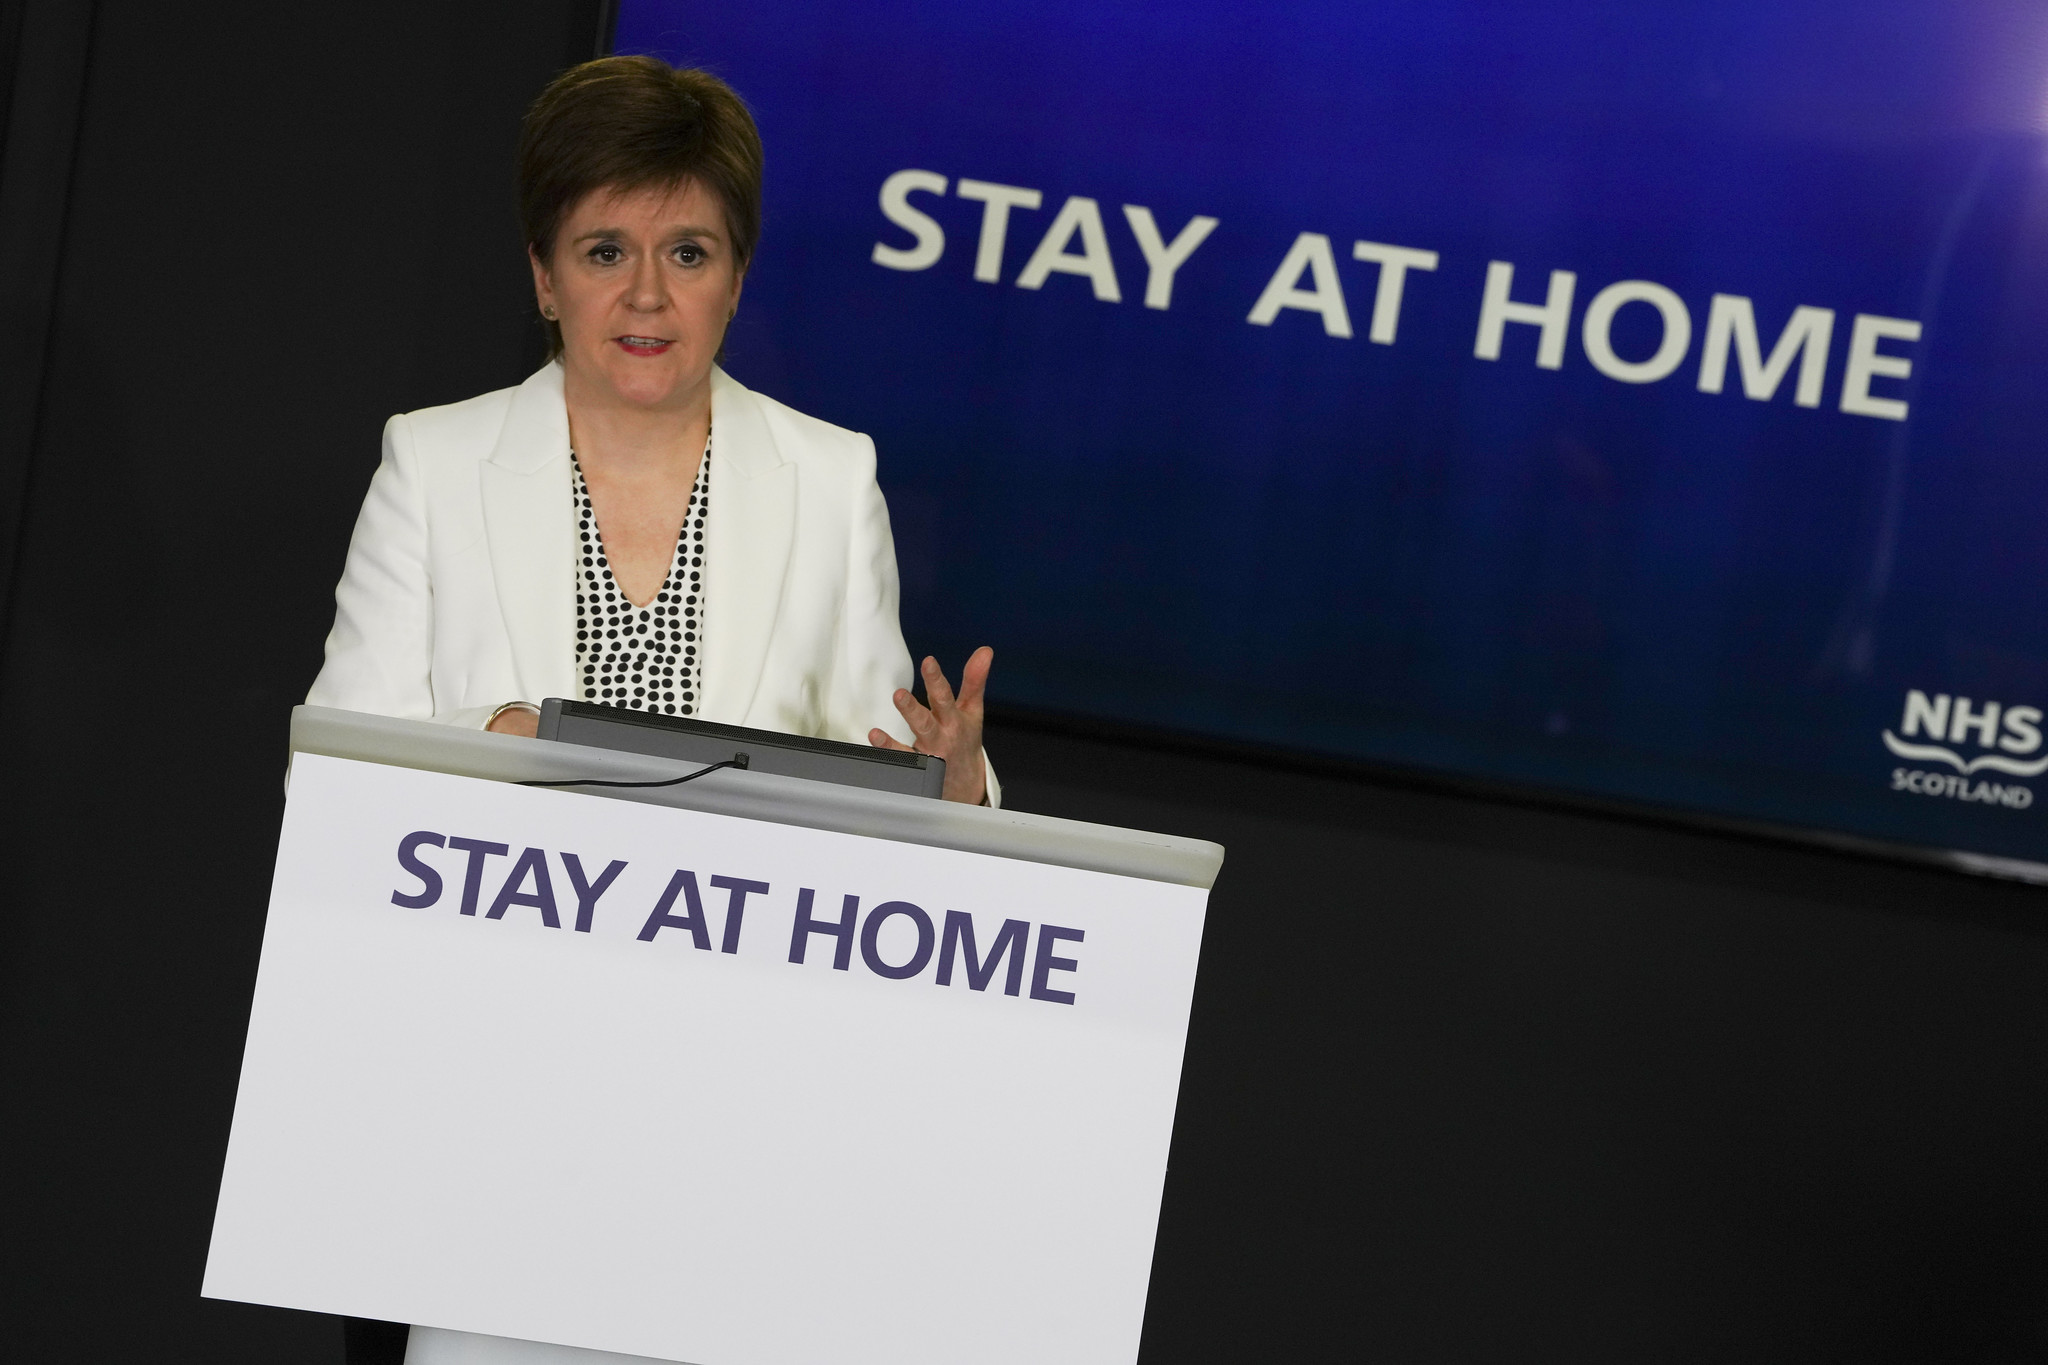 Scotland's First Minister, Nicola Sturgeon.